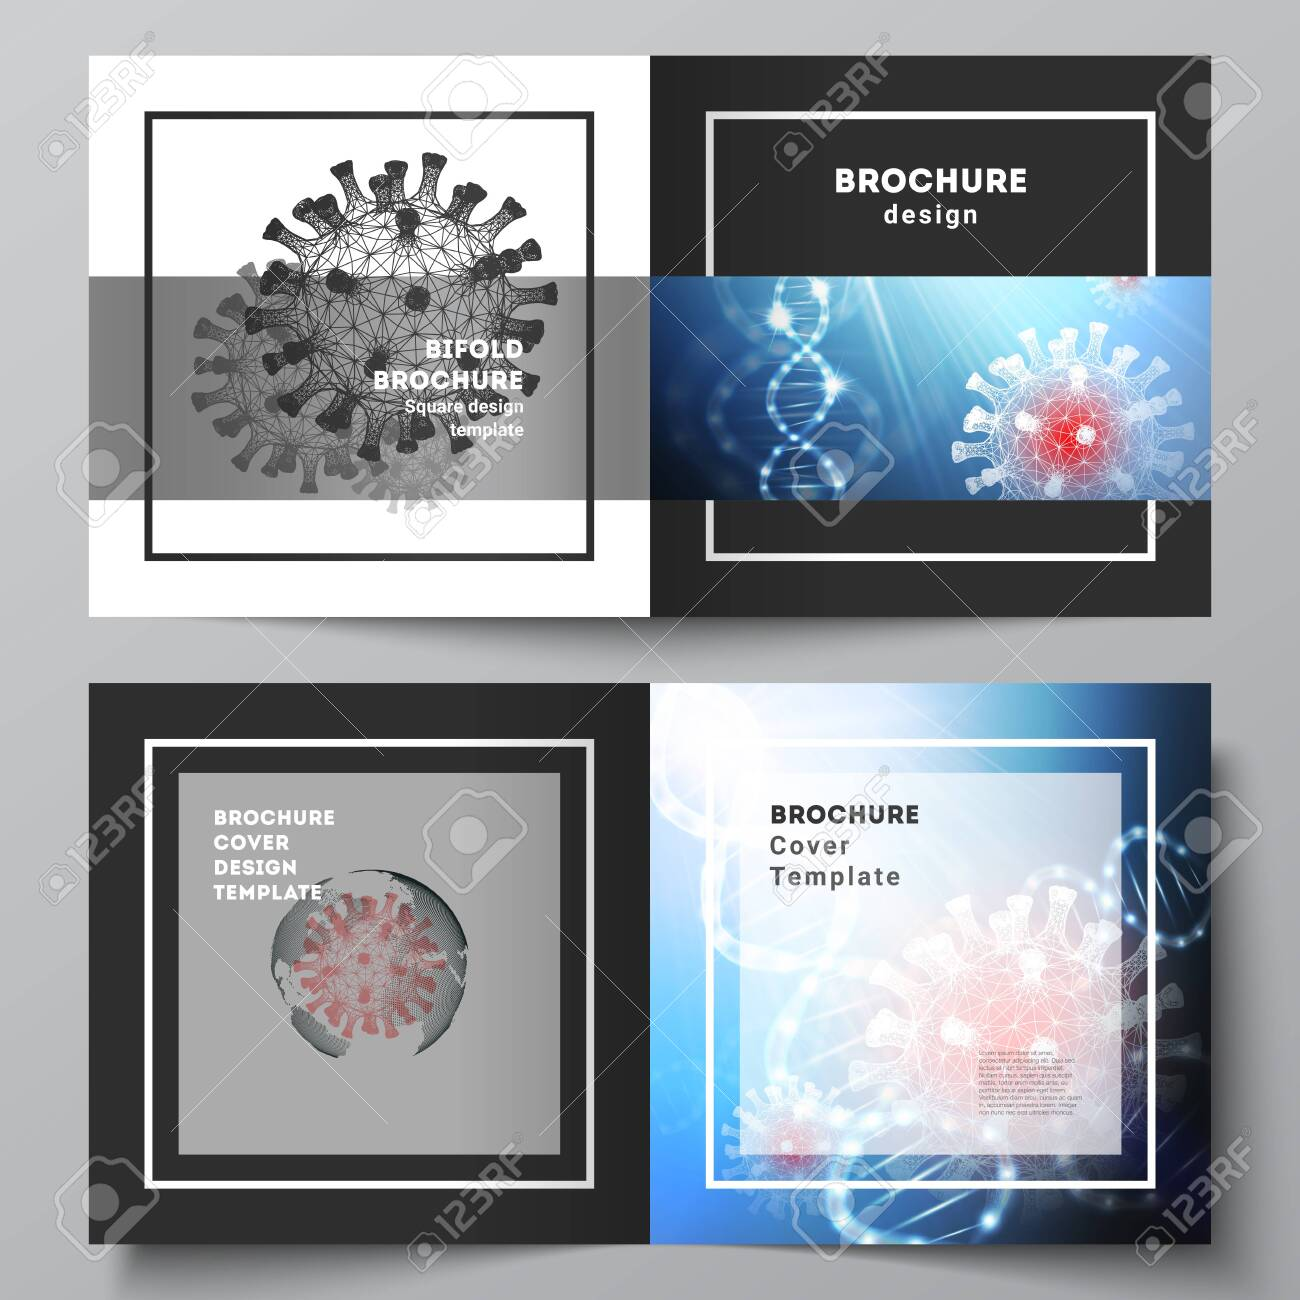 Vector layout of two cover templates for square bifold brochure, flyer, cover design, book design, brochure cover. 3d medical background of corona virus. Covid 19, coronavirus infection. Virus concept - 145531639